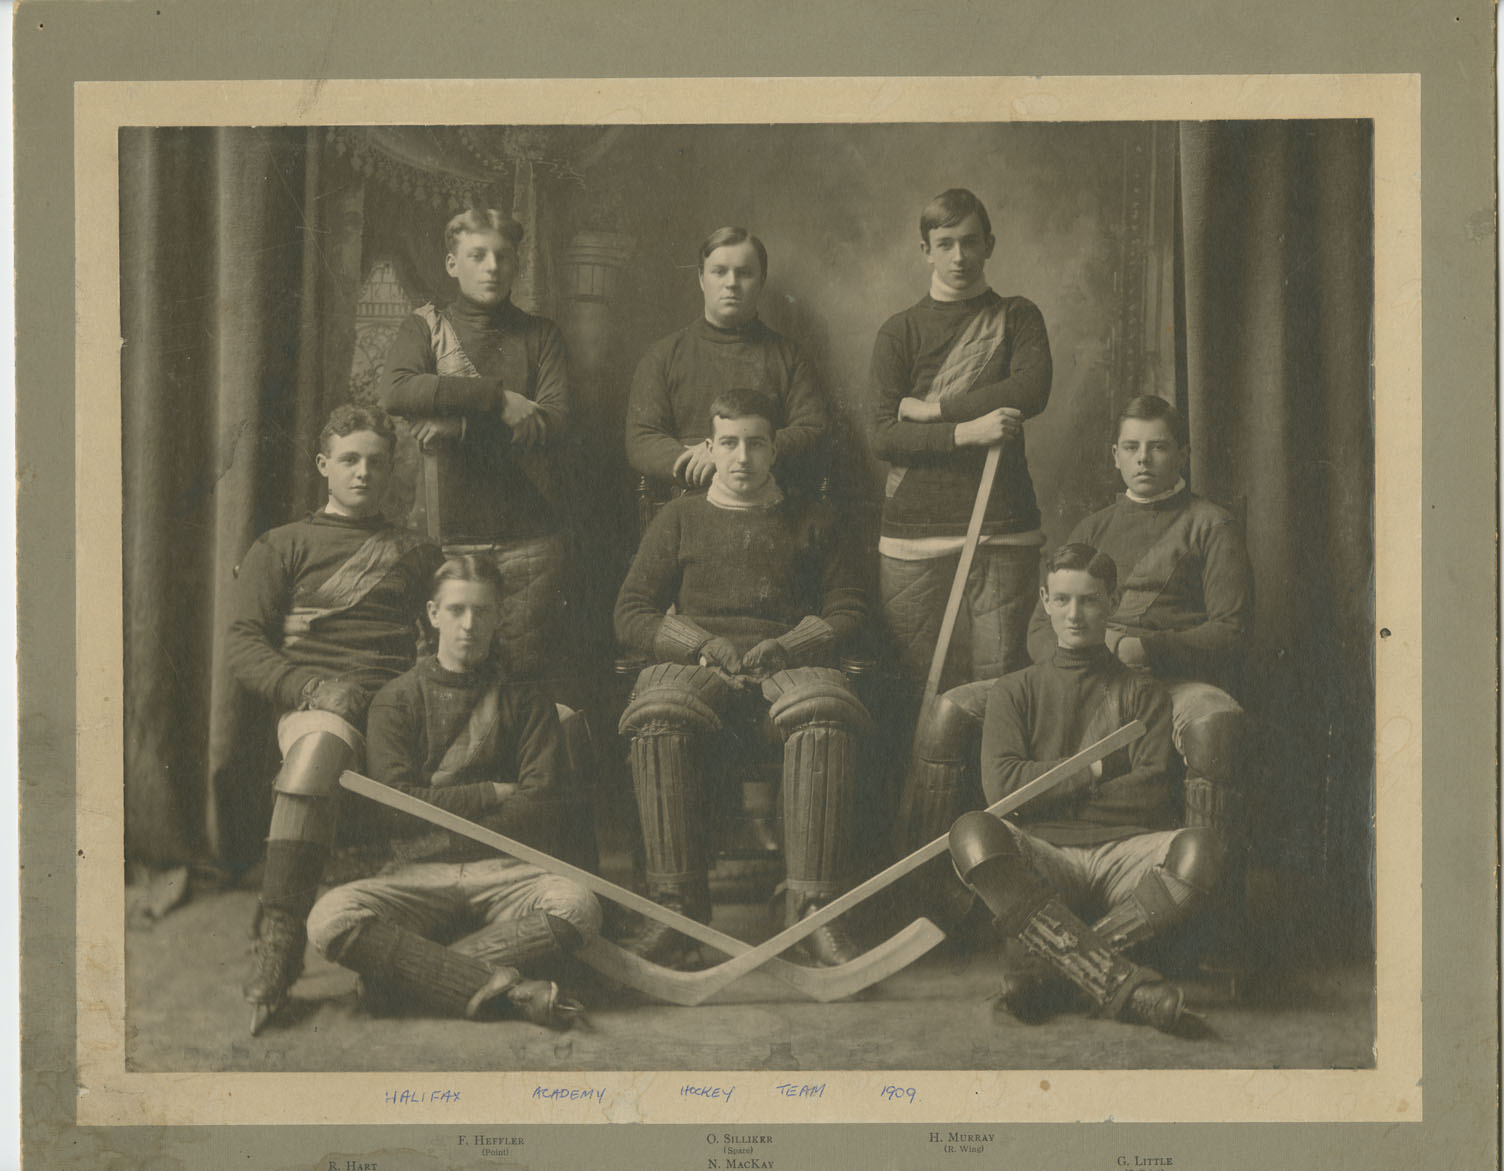 Halifax Academy Hockey Team